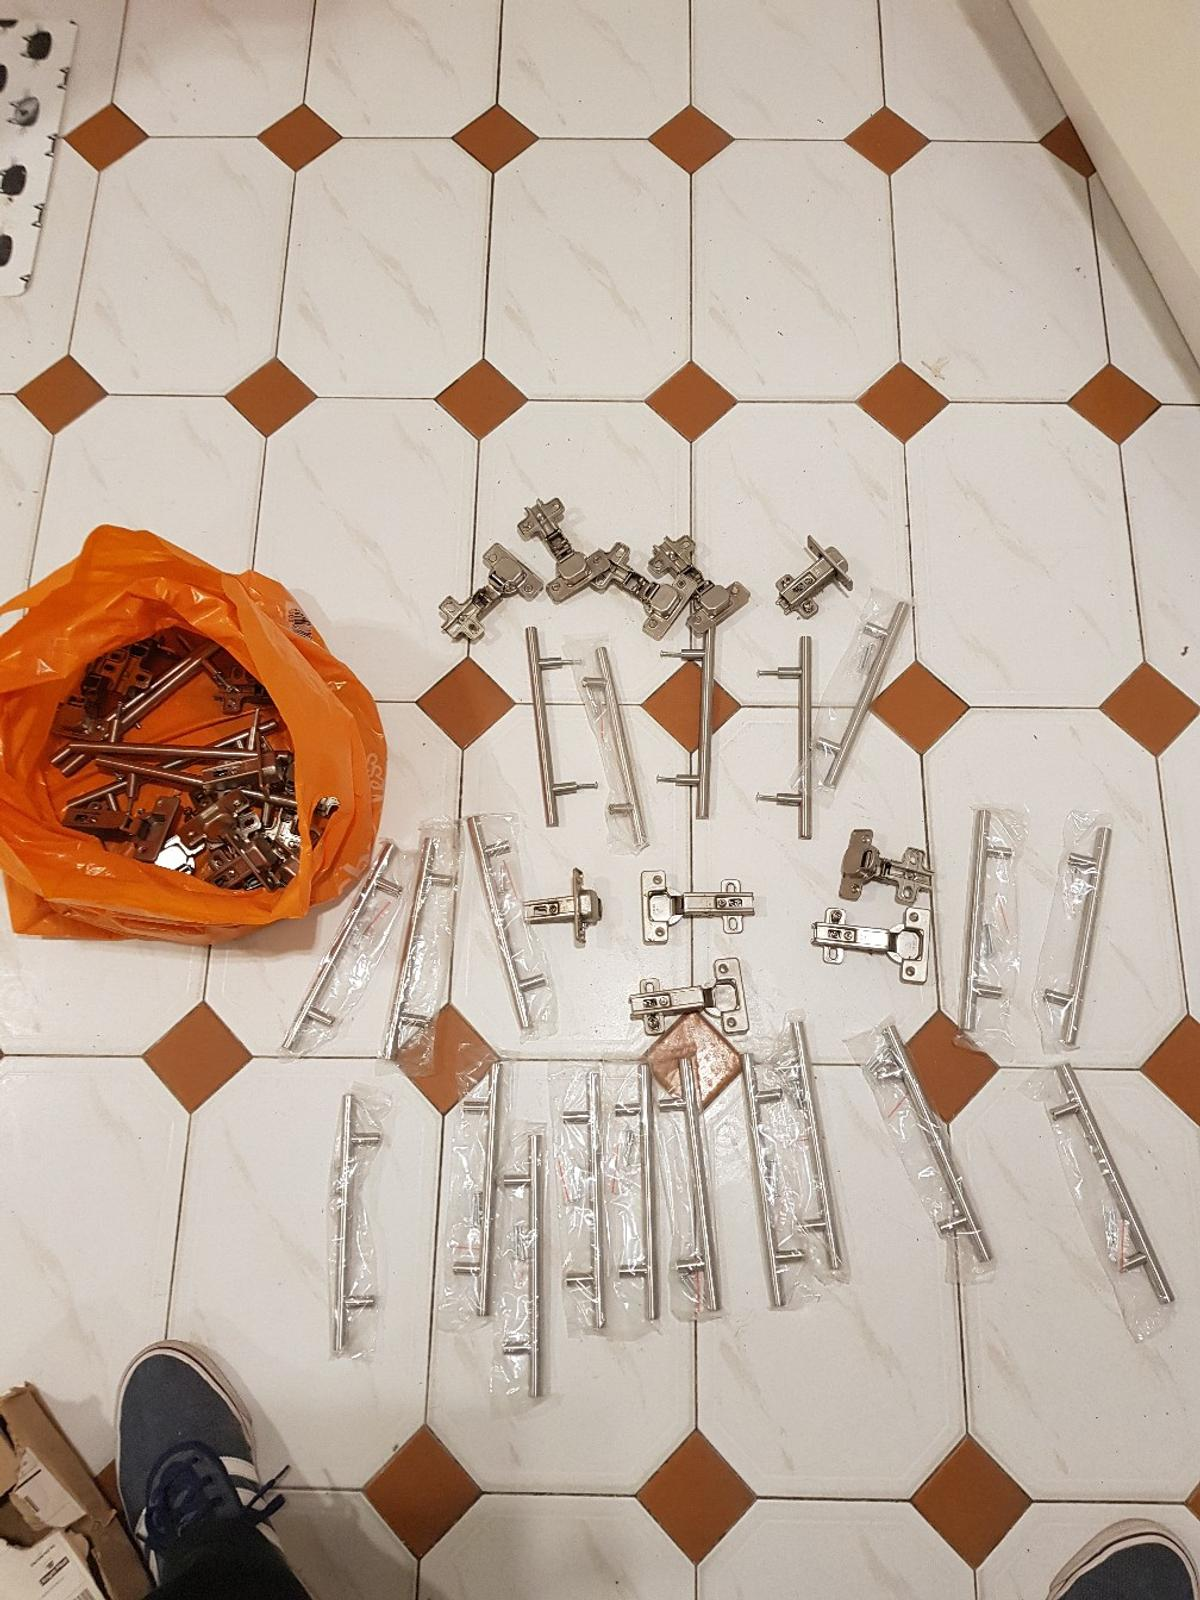 About 20 Brand new cupboard door handles. also some used same type. also about 15 pairs of hinges for same cupboards 20 pounds the lot